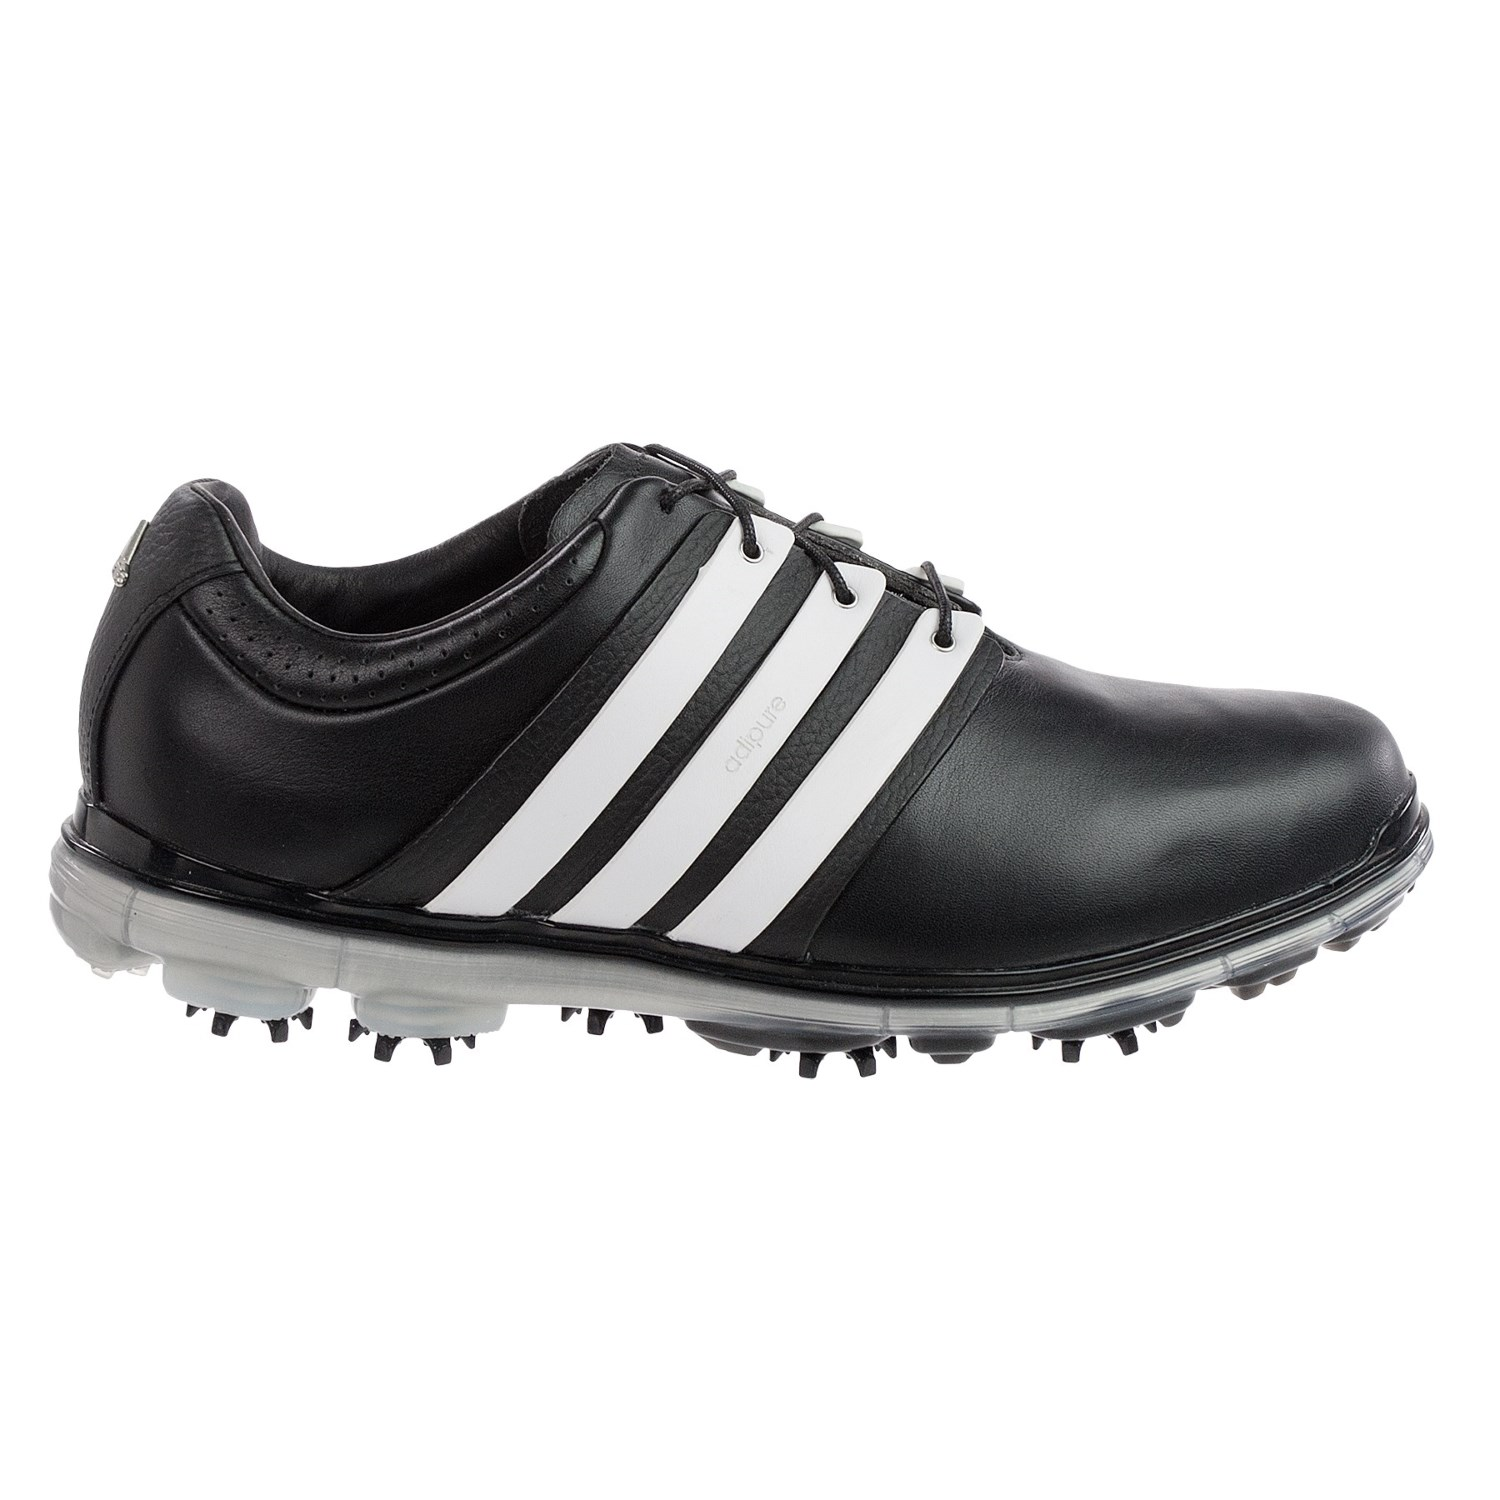 Where To Buy Golf Shoes In Colorado Springs